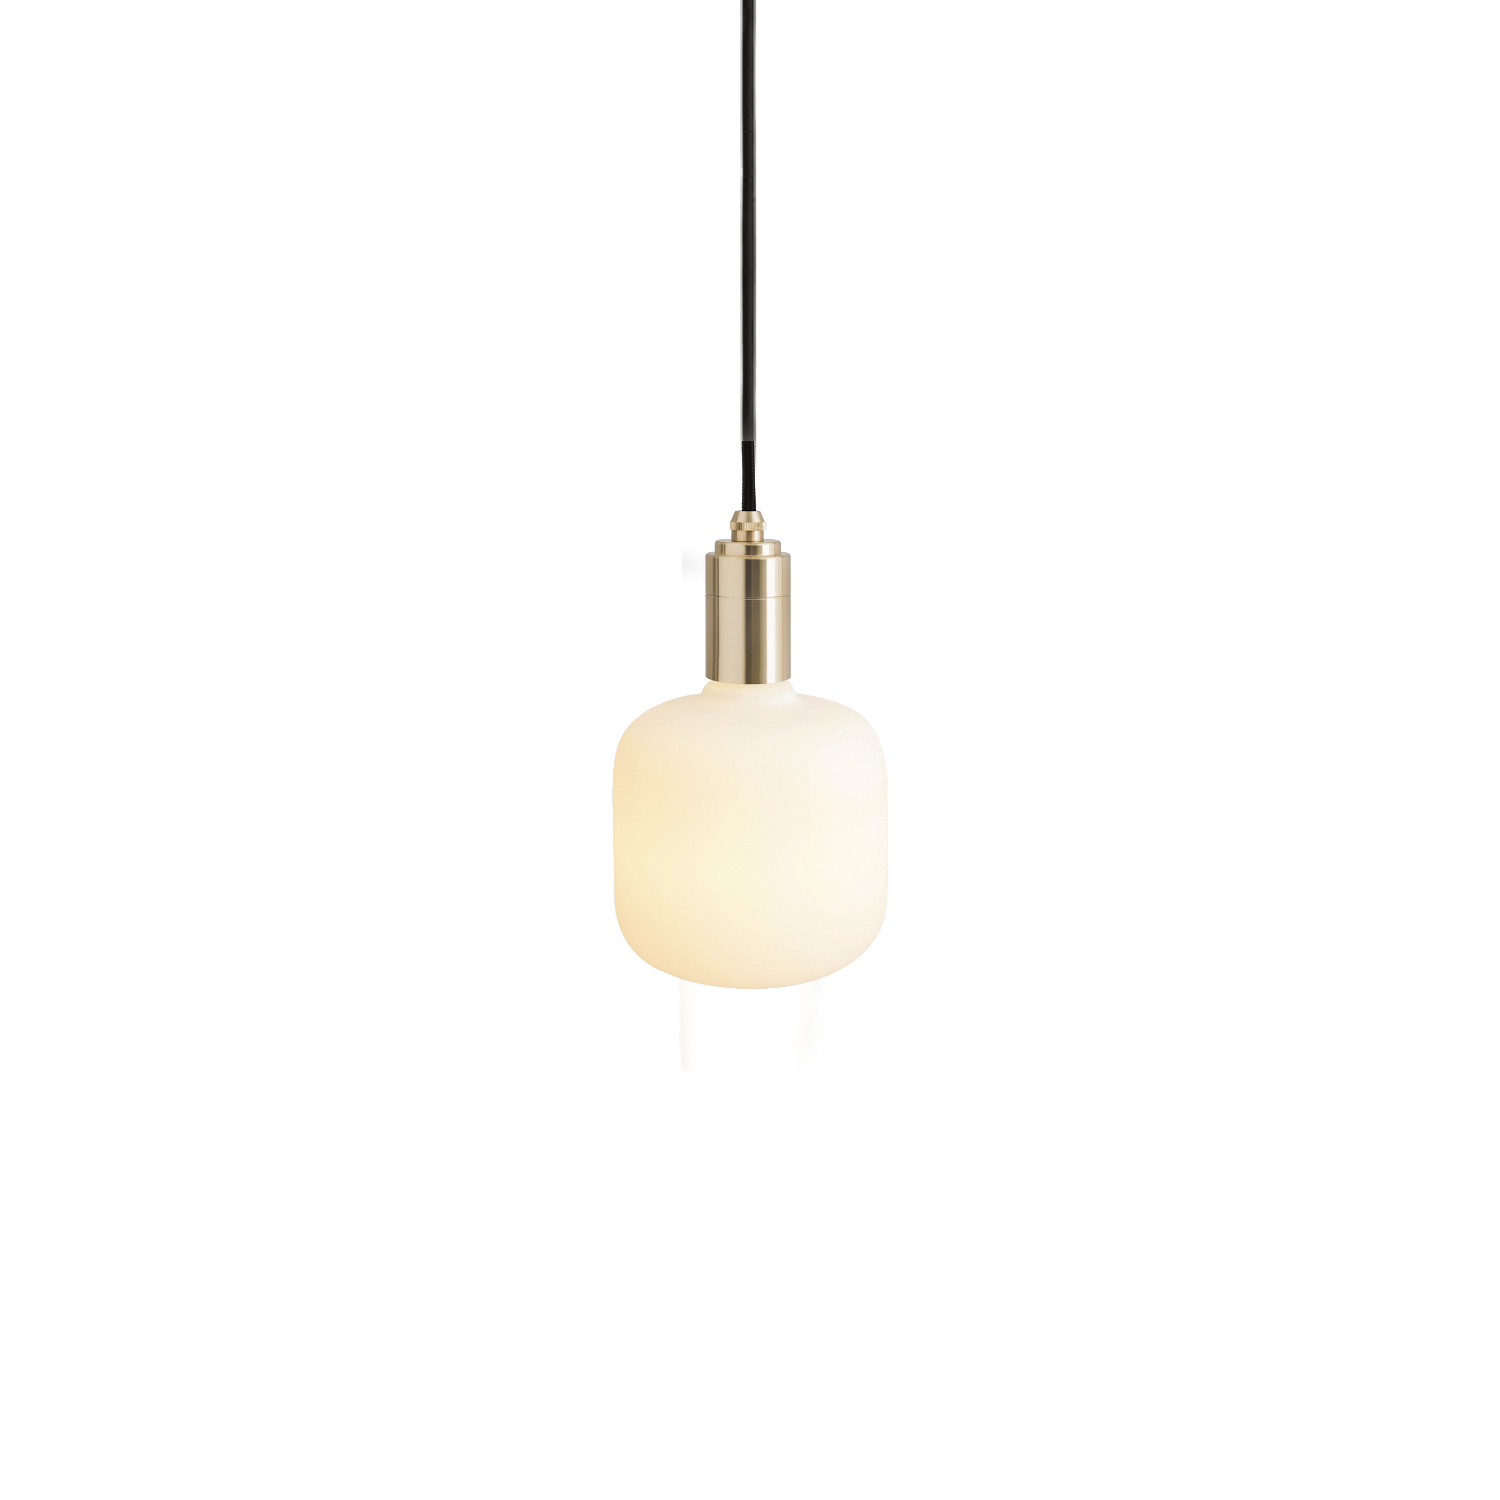 Oblo Pendant Light - The Oblo Pendant Light combines the geometric shape of the Oblo bulb with the minimalist Tala pendant in Brass, Graphite, Oak or Walnut finish, designed to create a single lighting solution for any interior space.  The matte-white glass finish and high lumen output of the Oblo bulb combine to produce a soft, even light. Filling a room, hallway or corner space, this is perfect for creating a sense of calm in your home or workspace.  Paired with the Brass, Graphite, Oak or Walnut pendants, this is a beautiful and decorative lighting fixture all in one.  Connect to one of our recommended dimmers for maximum performance.  Features – Dimmable – Strong geometric shape – Energy-efficient, LED technology – Matte white glass finish – Available with a Brass, Graphite, Oak or Walnut pendant – 3 metre length cord for maximum versatility | Matter of Stuff